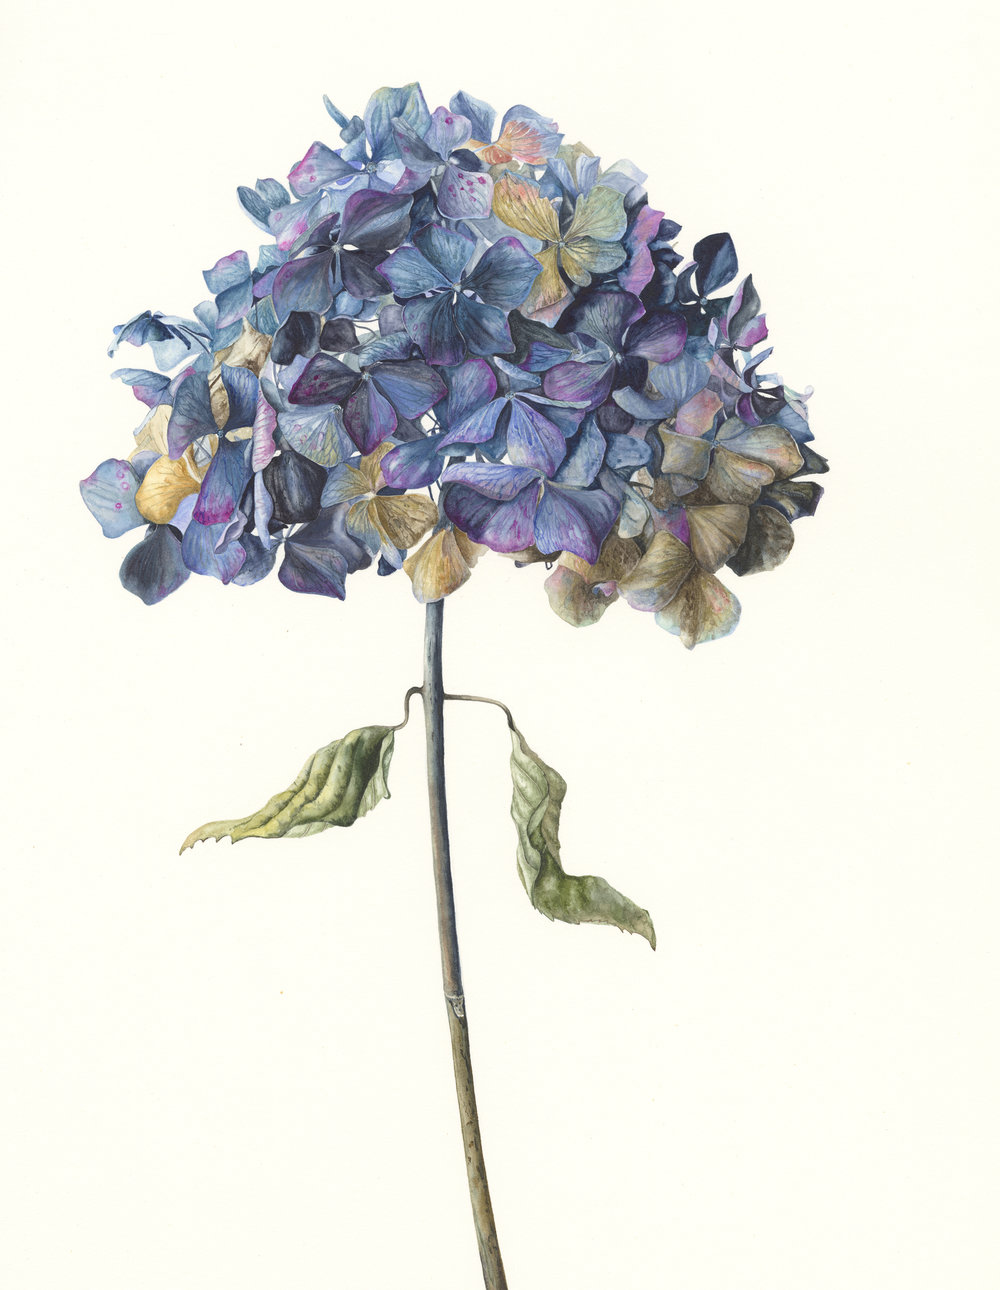 Hydrangea Macrophylla 'Enziandom'  watercolour on paper  30 x 43 cm image  53 x 68 cm framed  £1800